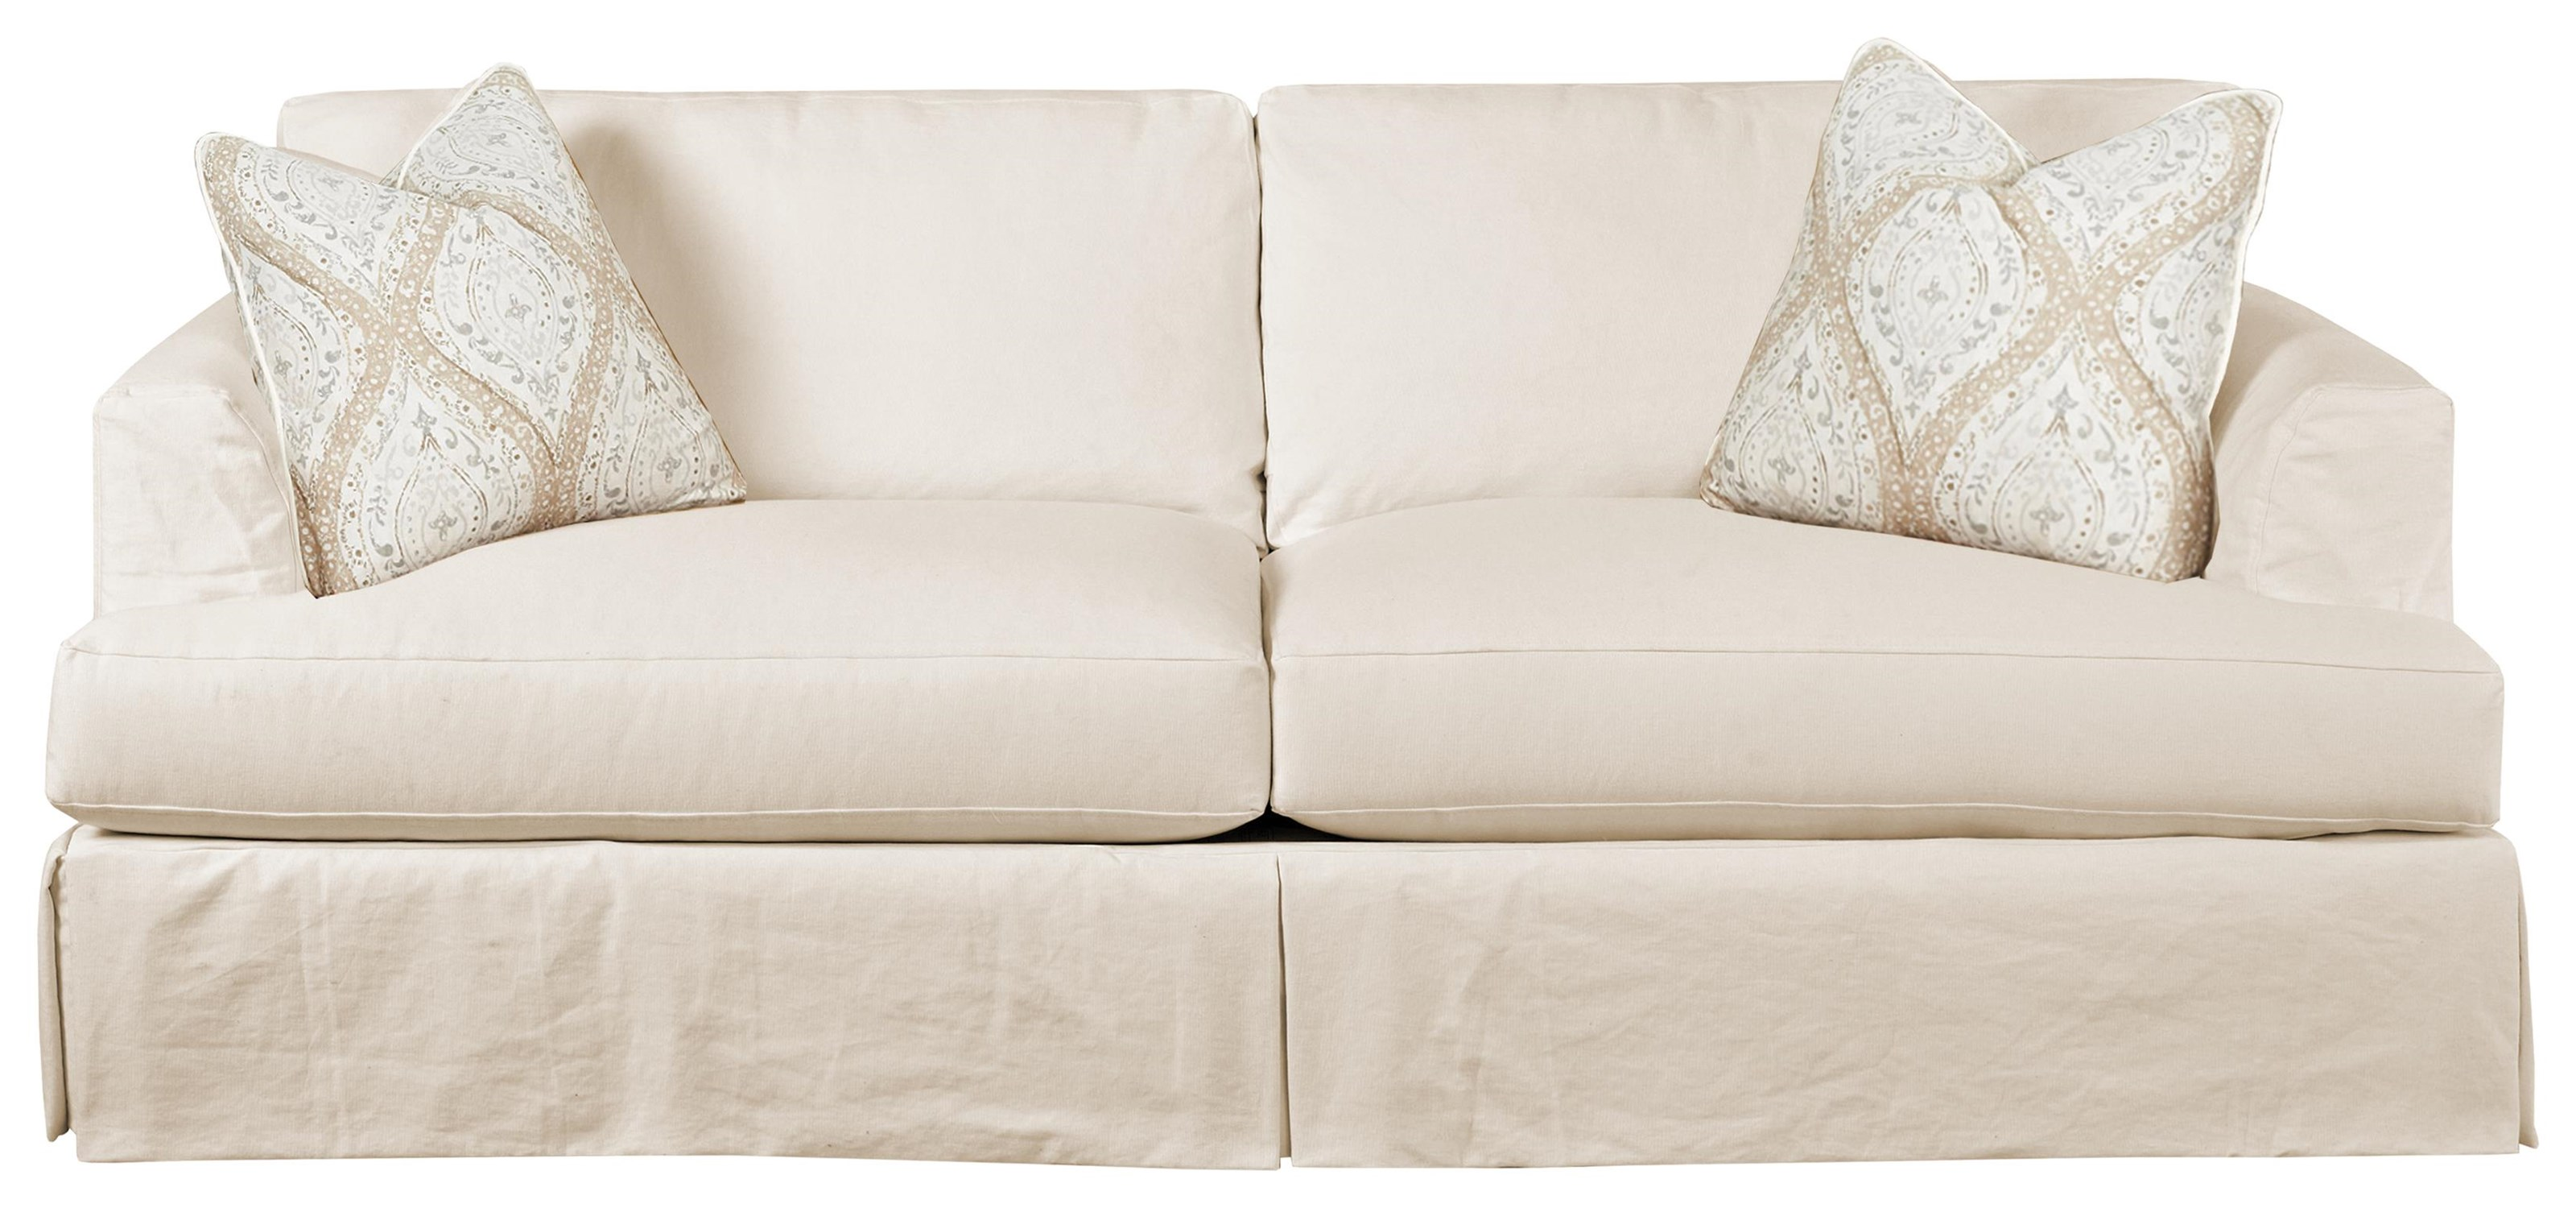 Addy Addy Slipcover Sofa by Klaussner at Morris Home